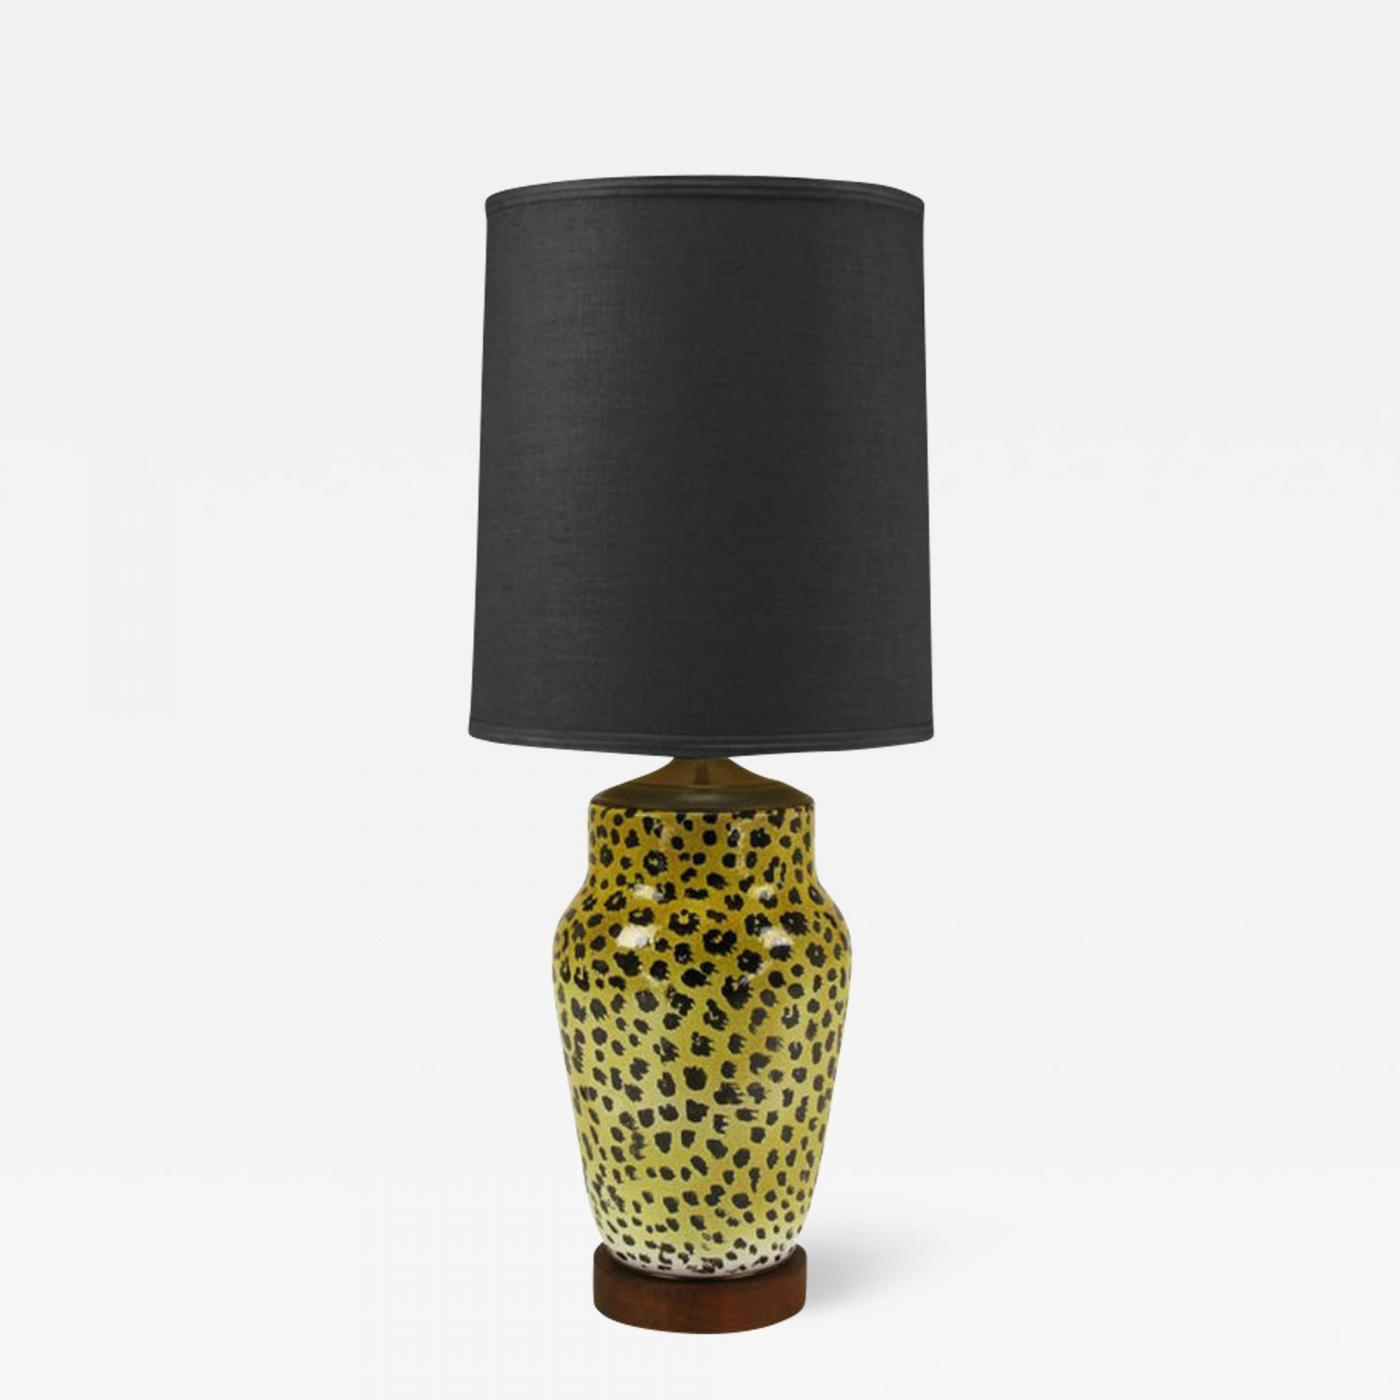 Modern Antique White Nelson Table Lamp with Grey White Polka Dot Shade